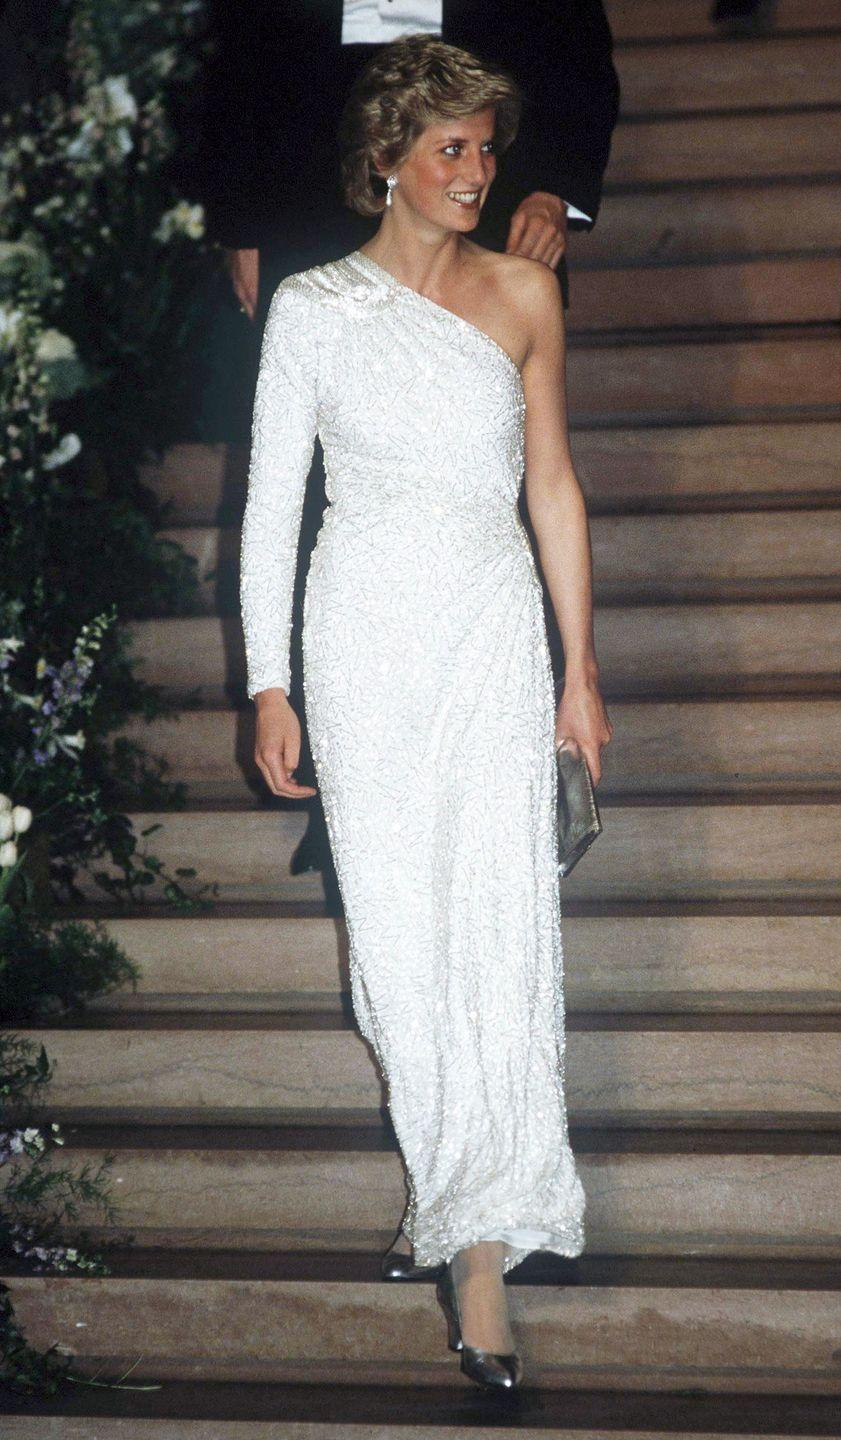 <p>The Princess chose a white, crystal-beaded silk chiffon gown by Japanese designer Hachi for an event at the National Gallery in Washington D.C. </p>